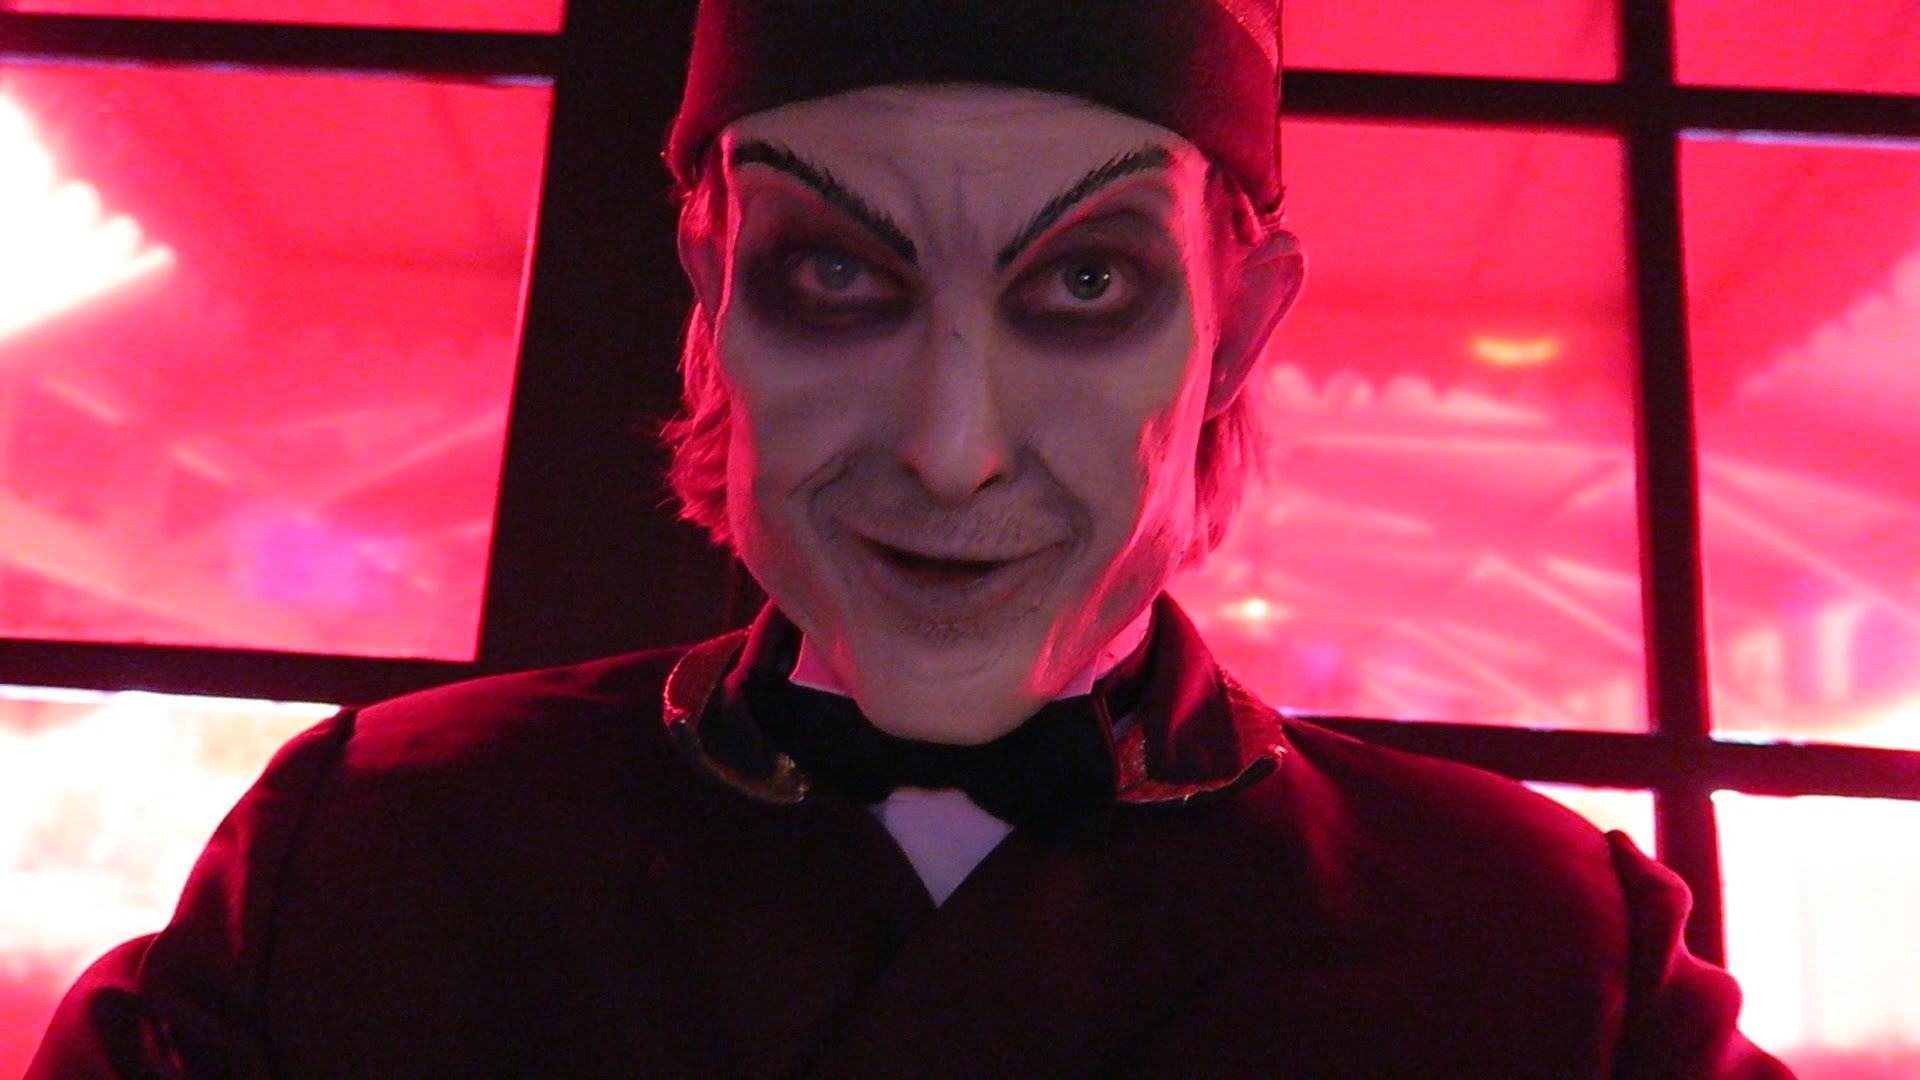 the usher took my camera at the halloween horror nights scare actor